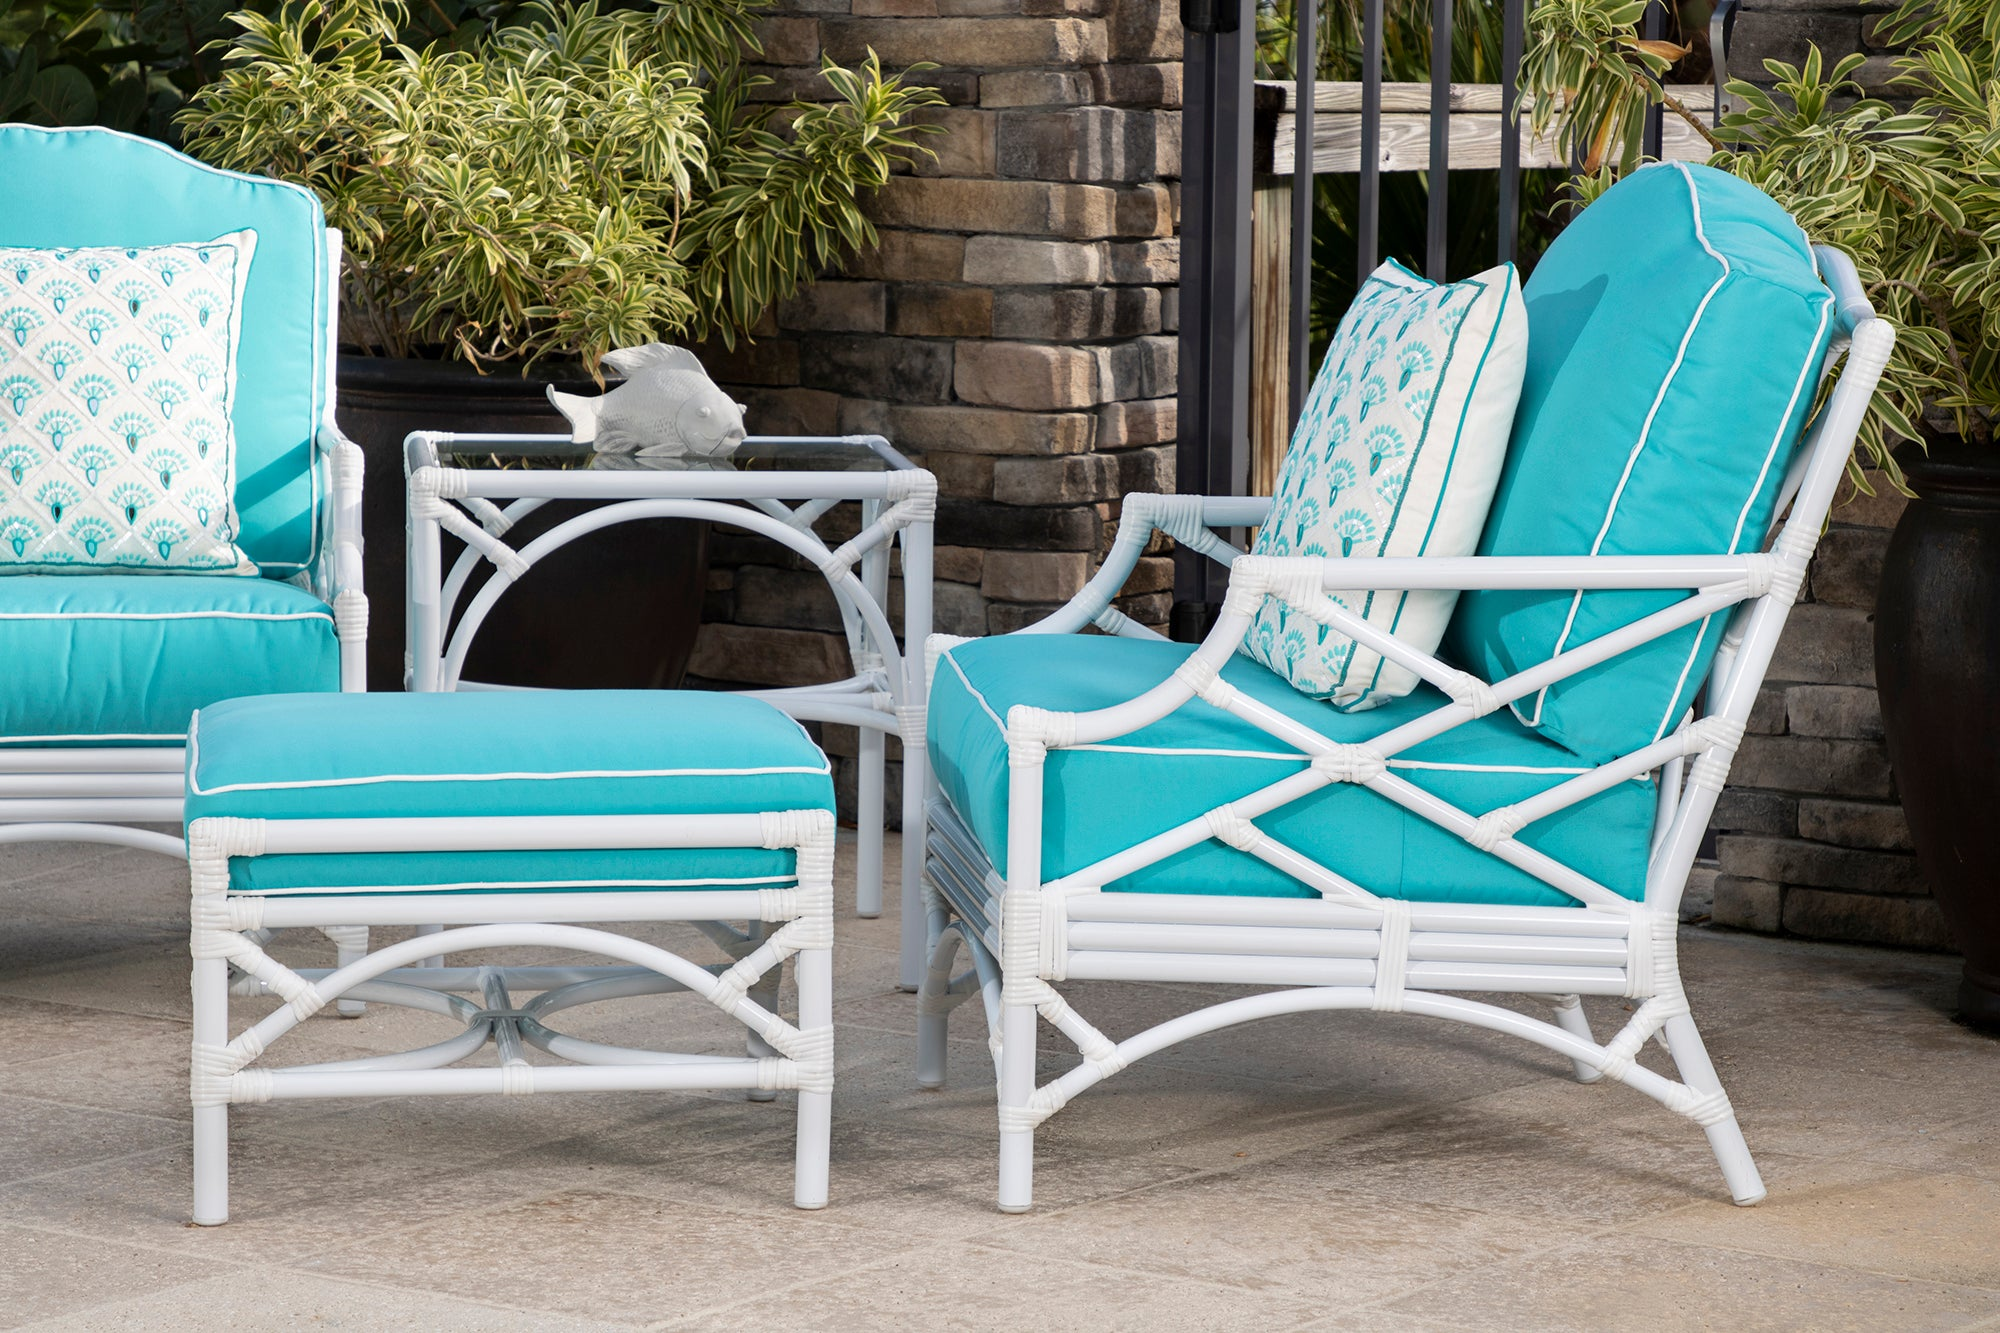 AW8080_Chippendale_Outdoor_Lounge_Chair_AW7080-OT_Chippendale_Outdoor_Ottoman-2000px.jpg